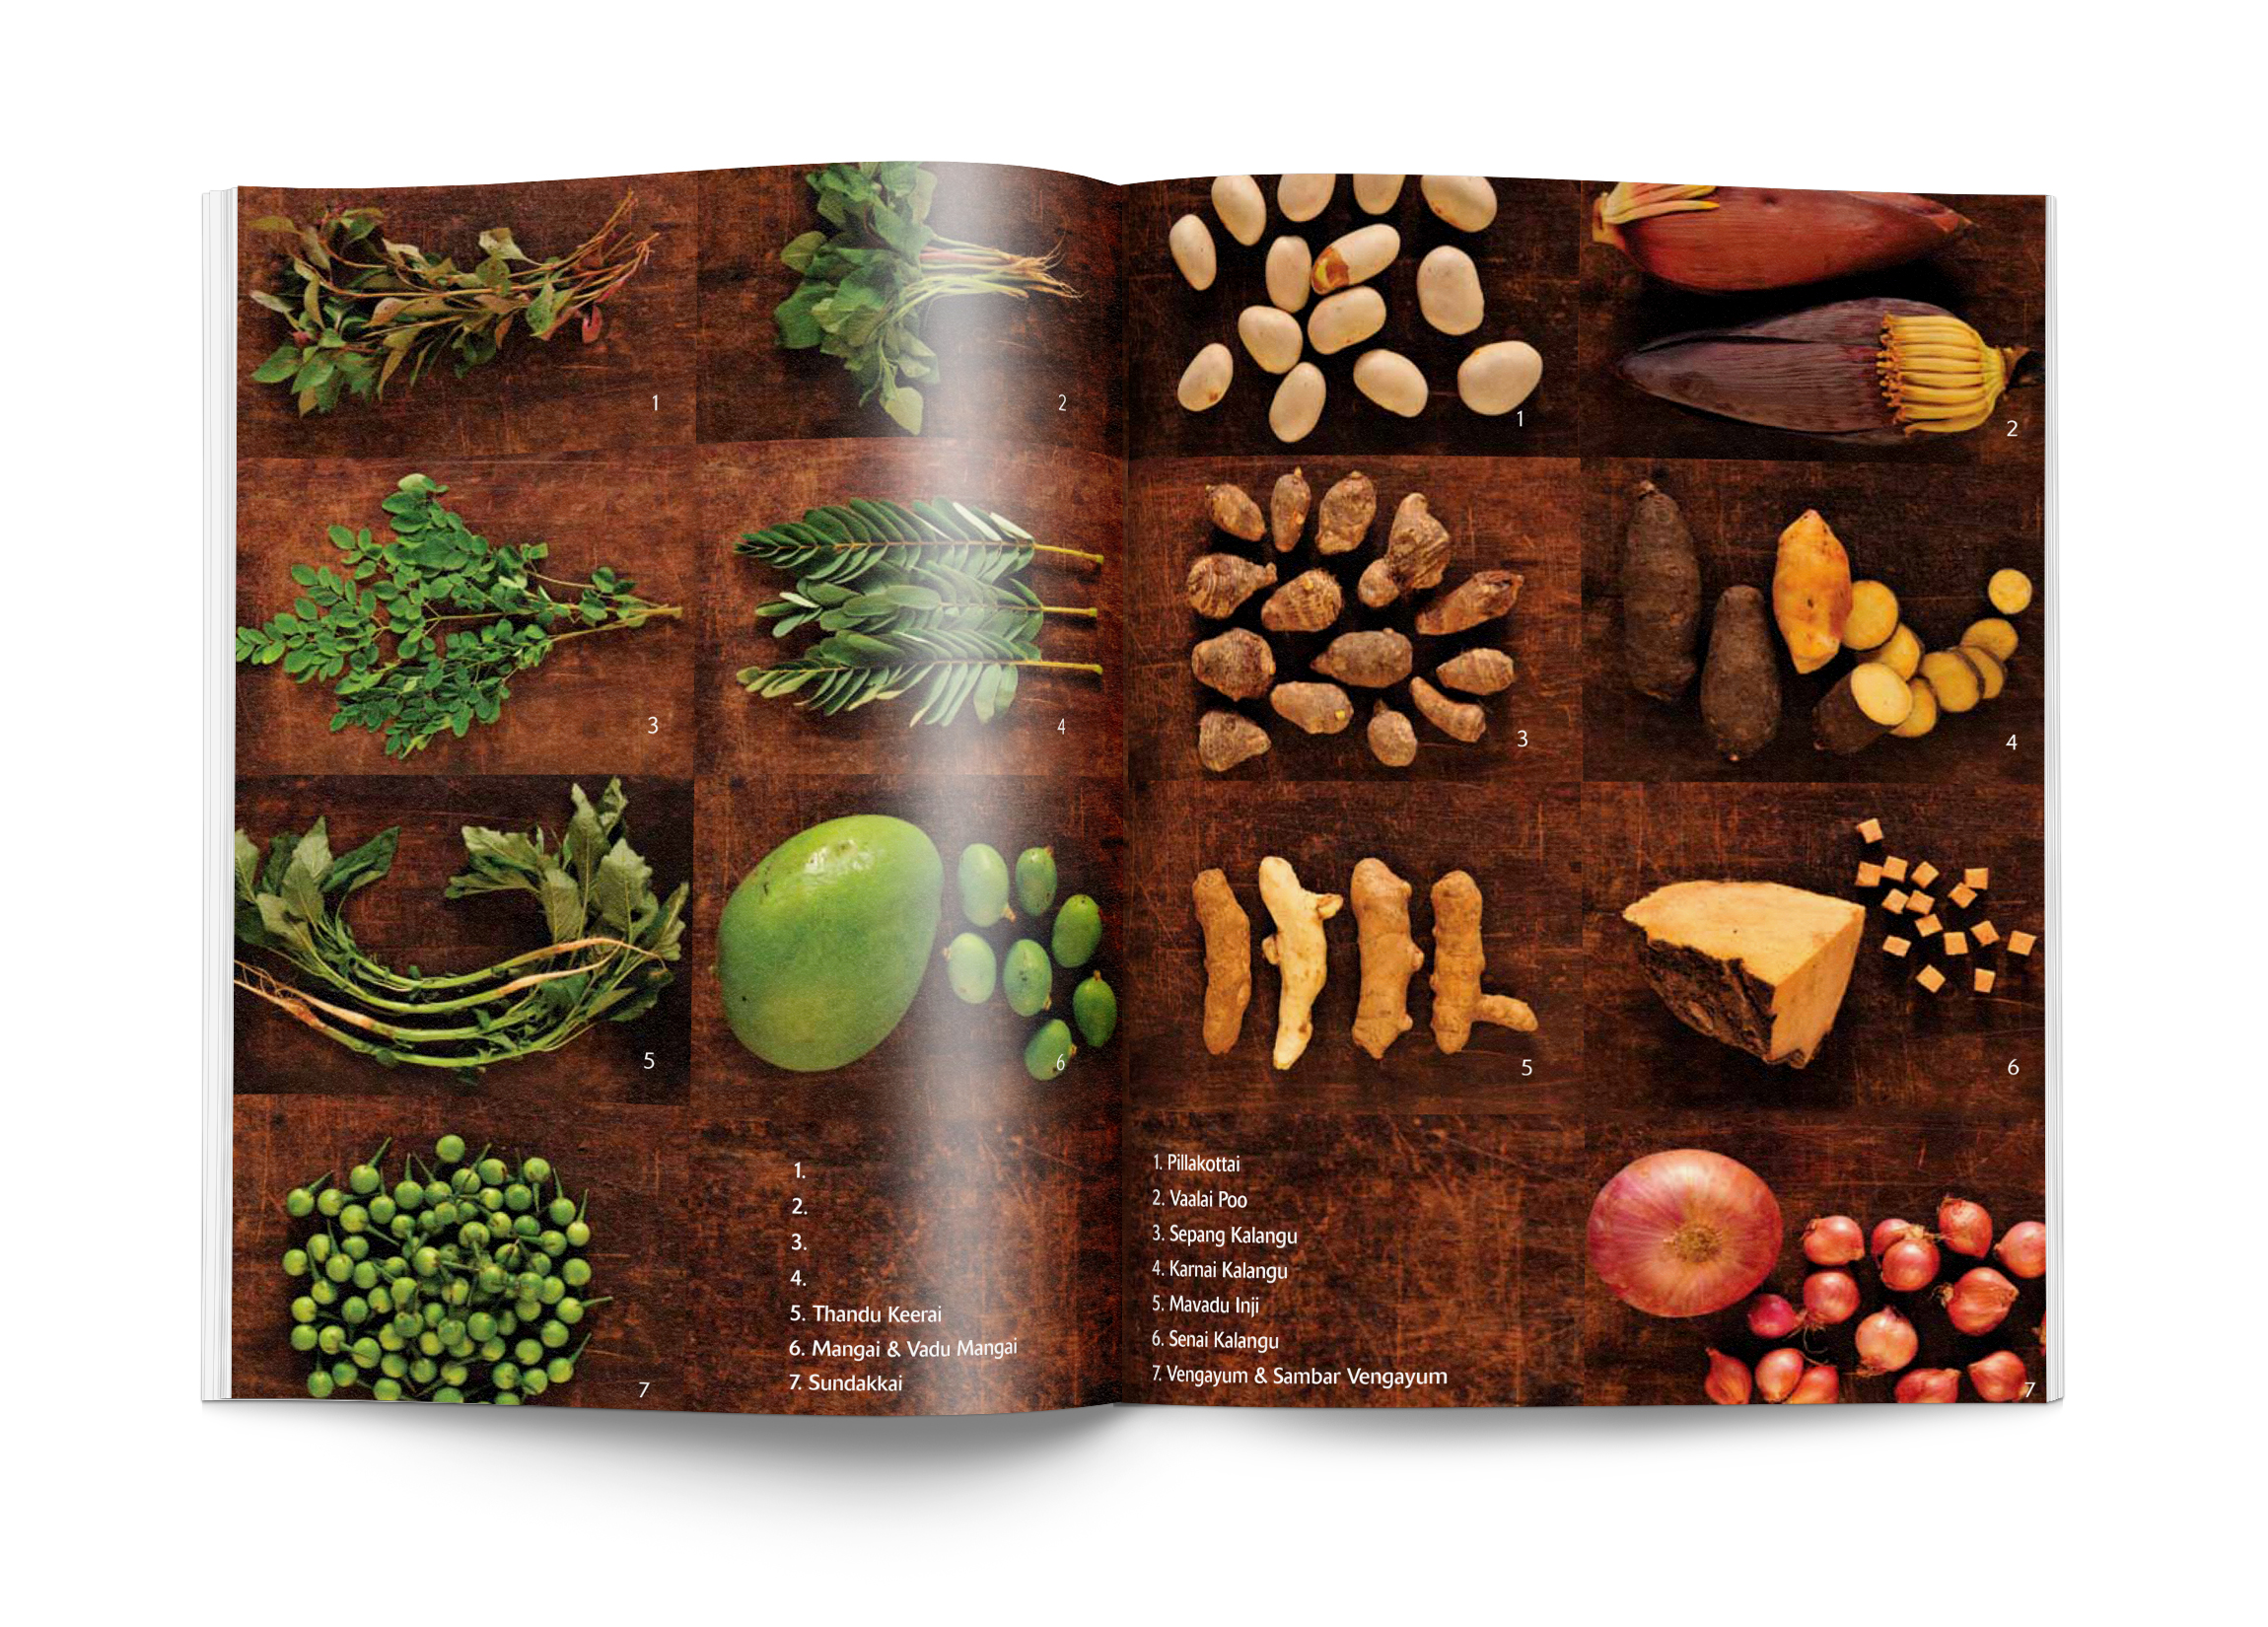 Cookbook spread8.jpg